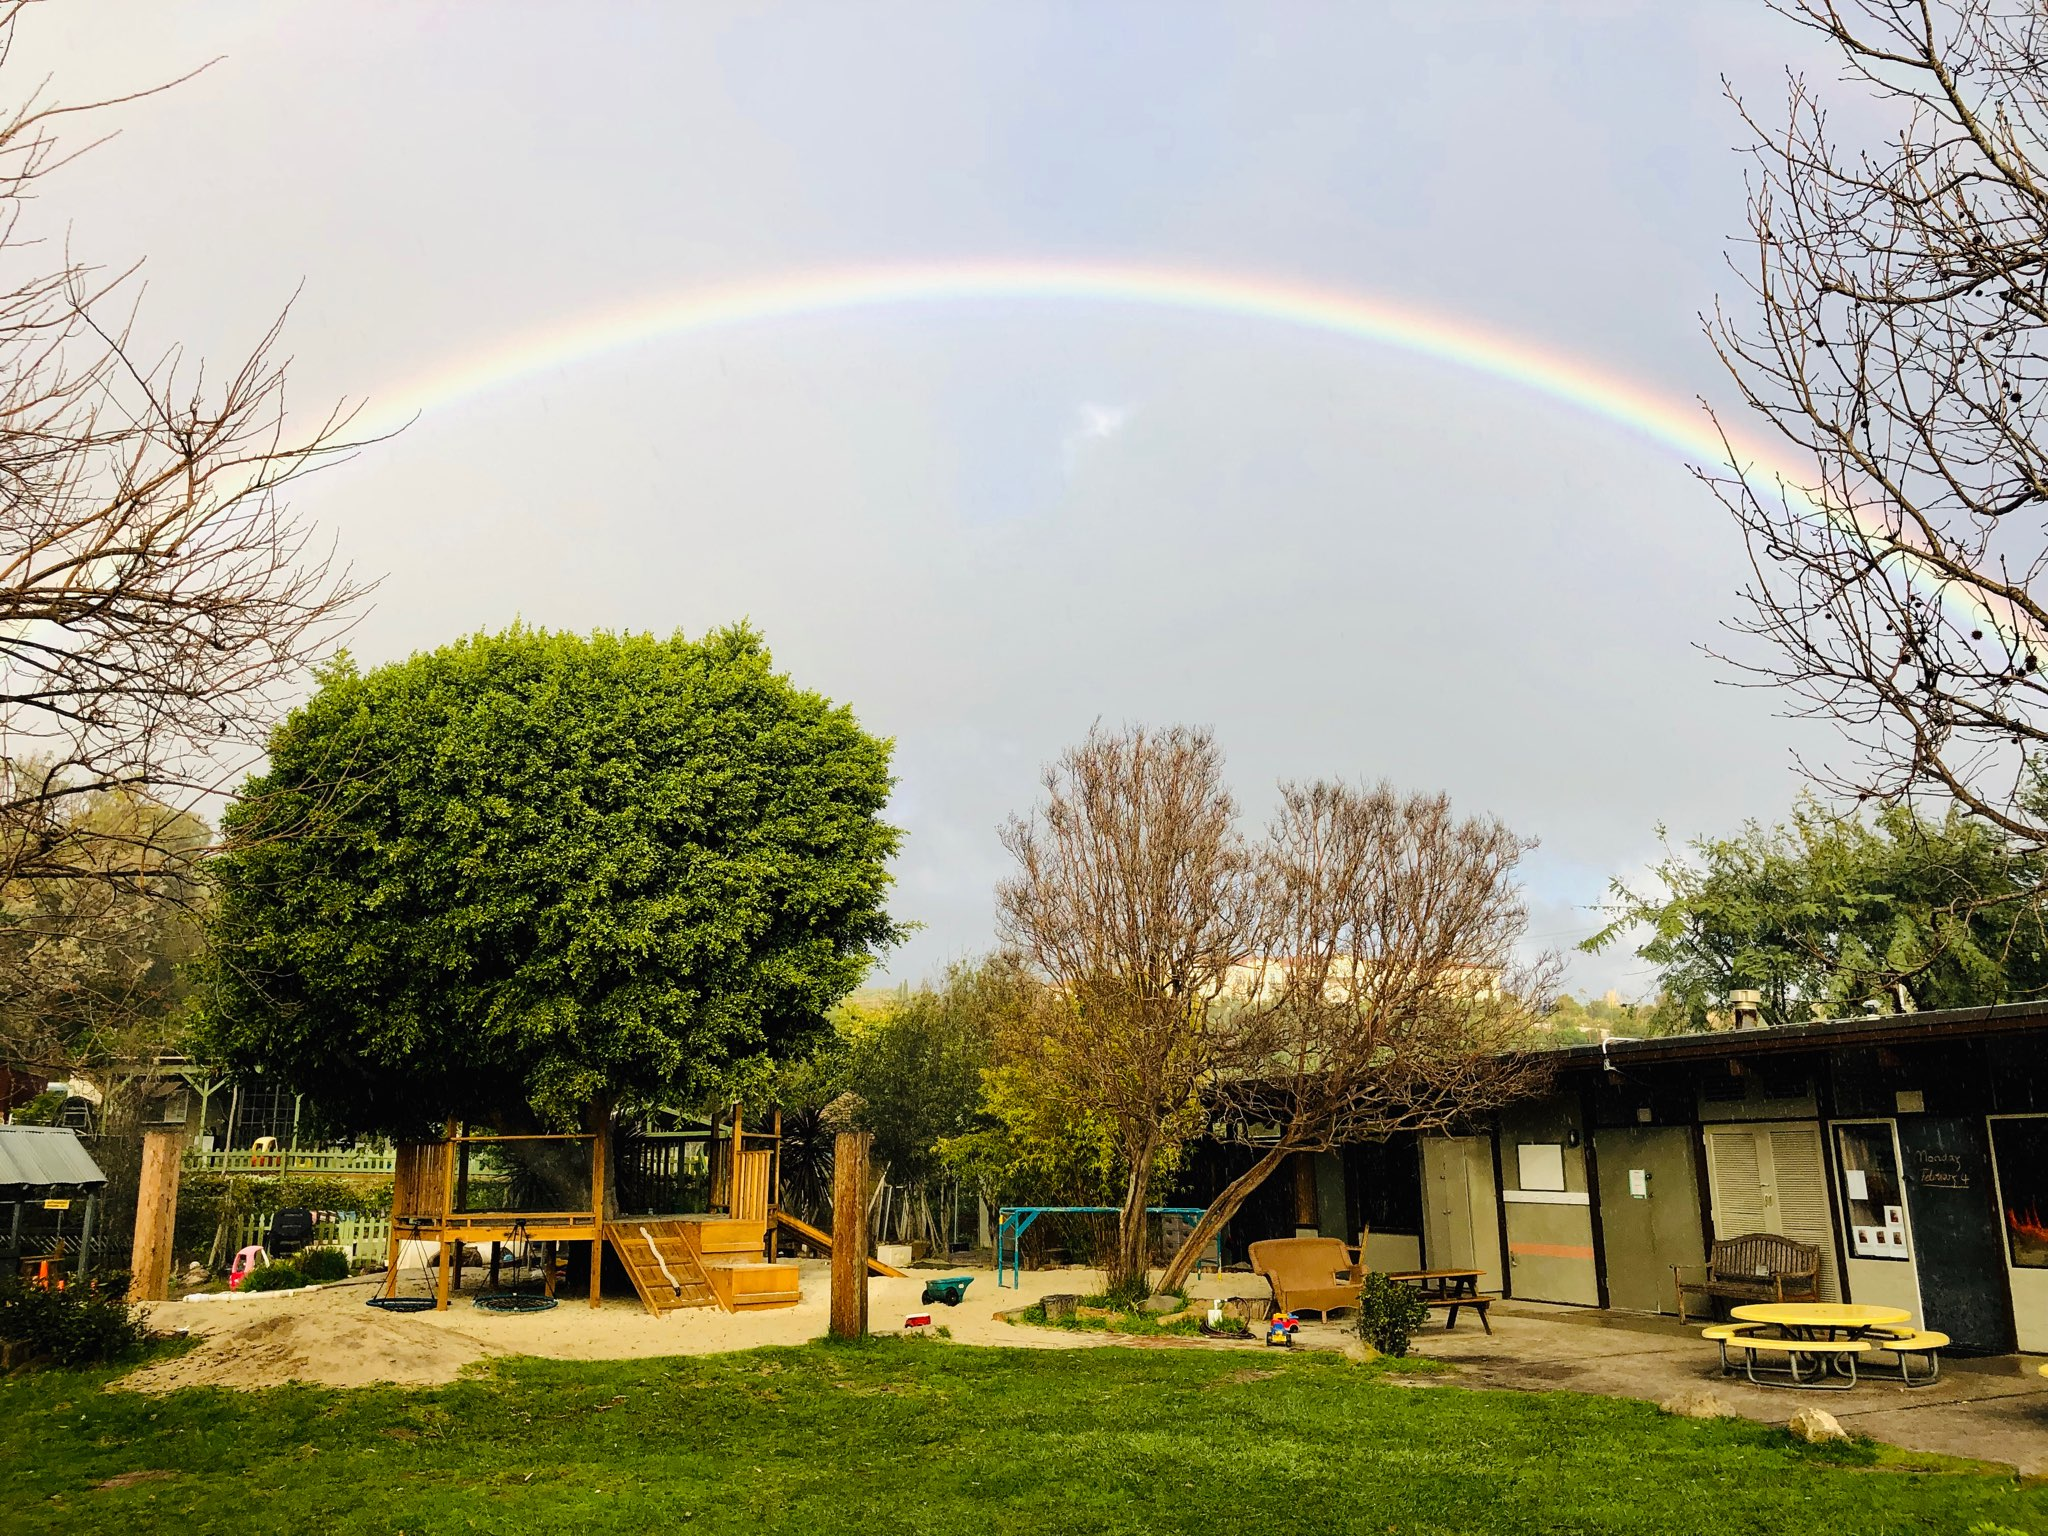 MALIBU METHODIST NURSERY SCHOOL Playground Rainbow.jpg